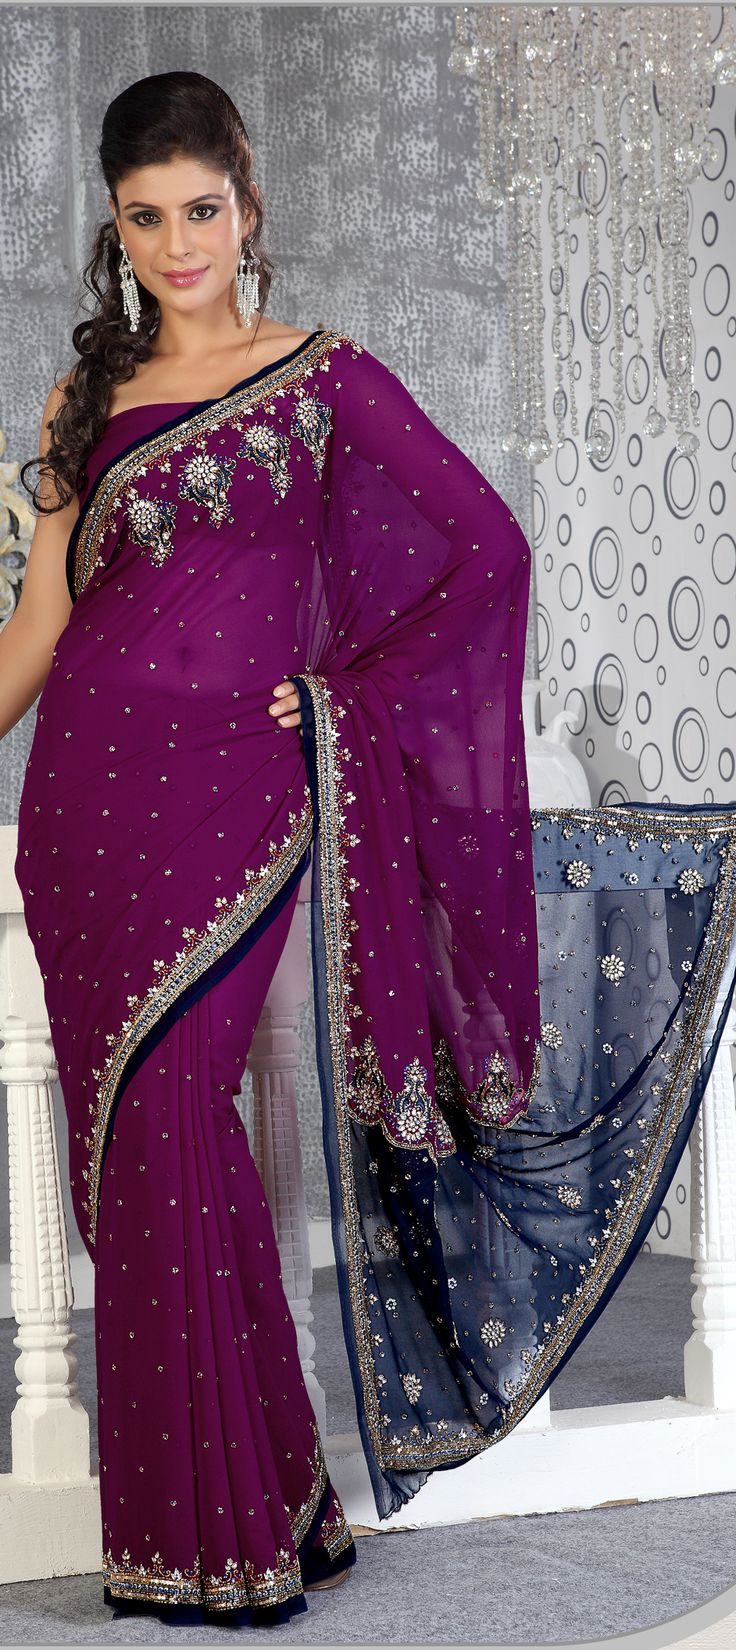 81121: Purple and Violet color family Saree with matching unstitched blouse.